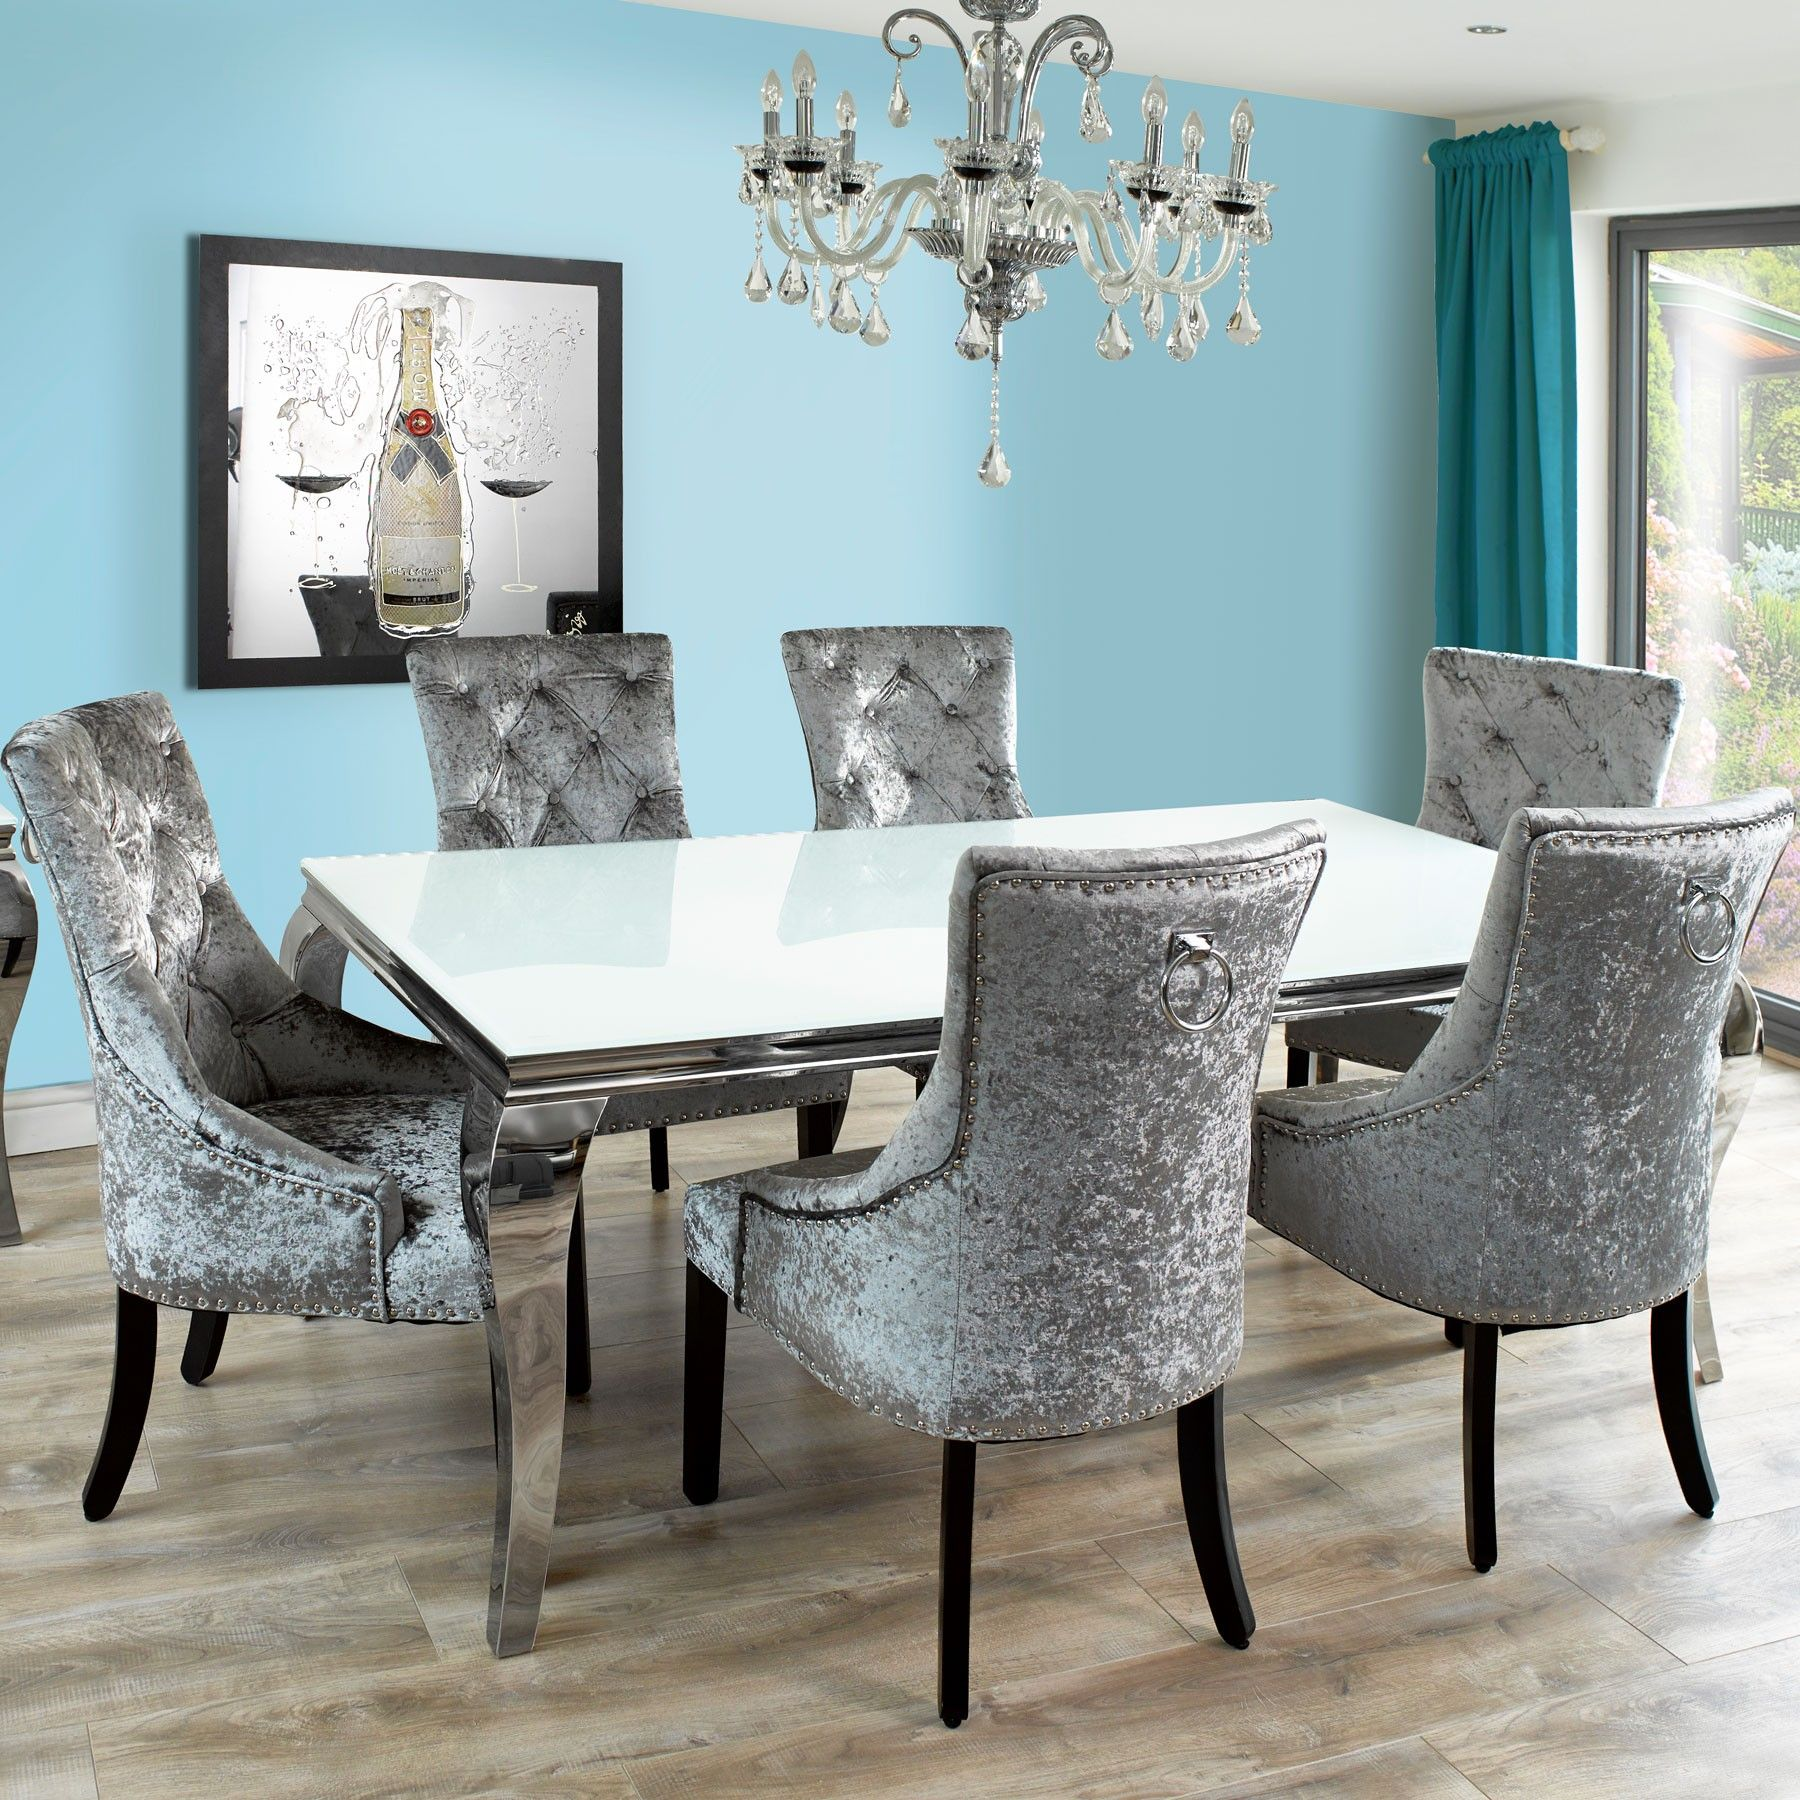 Dining Table And Chairs in 2020 | Grey dining room chairs, Dining room sets, Antique dining rooms